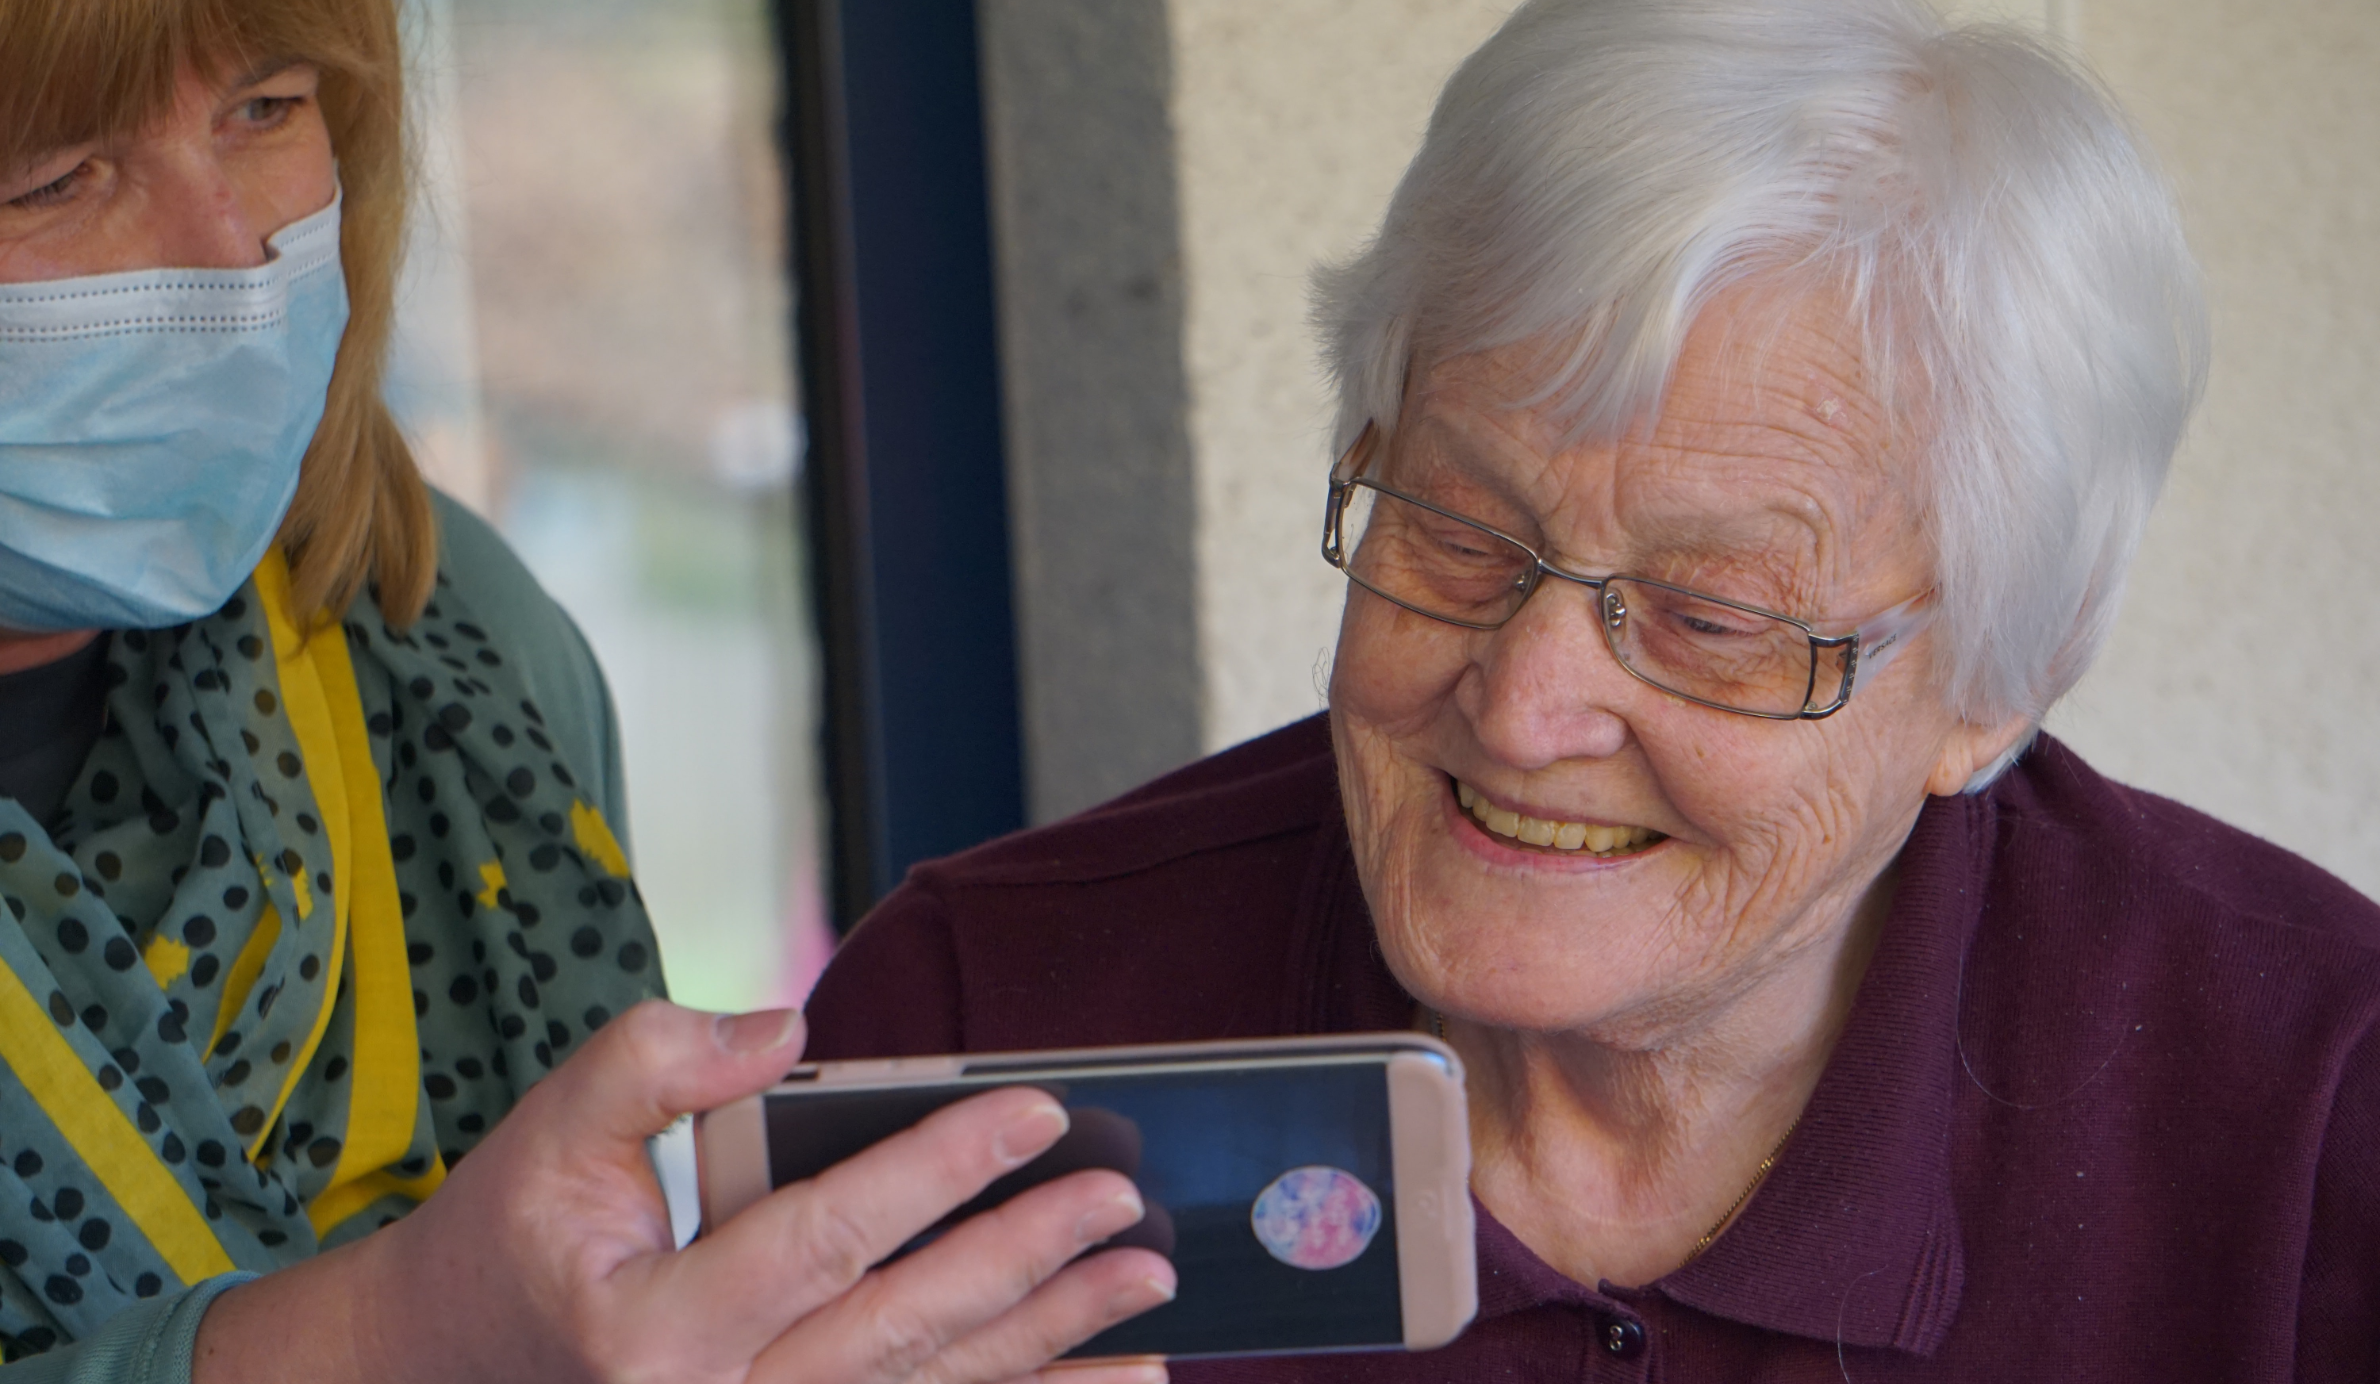 A 90 year old woman views pictures of her grandchildren on a phone. Georg Arthur Pflueger via Unsplash